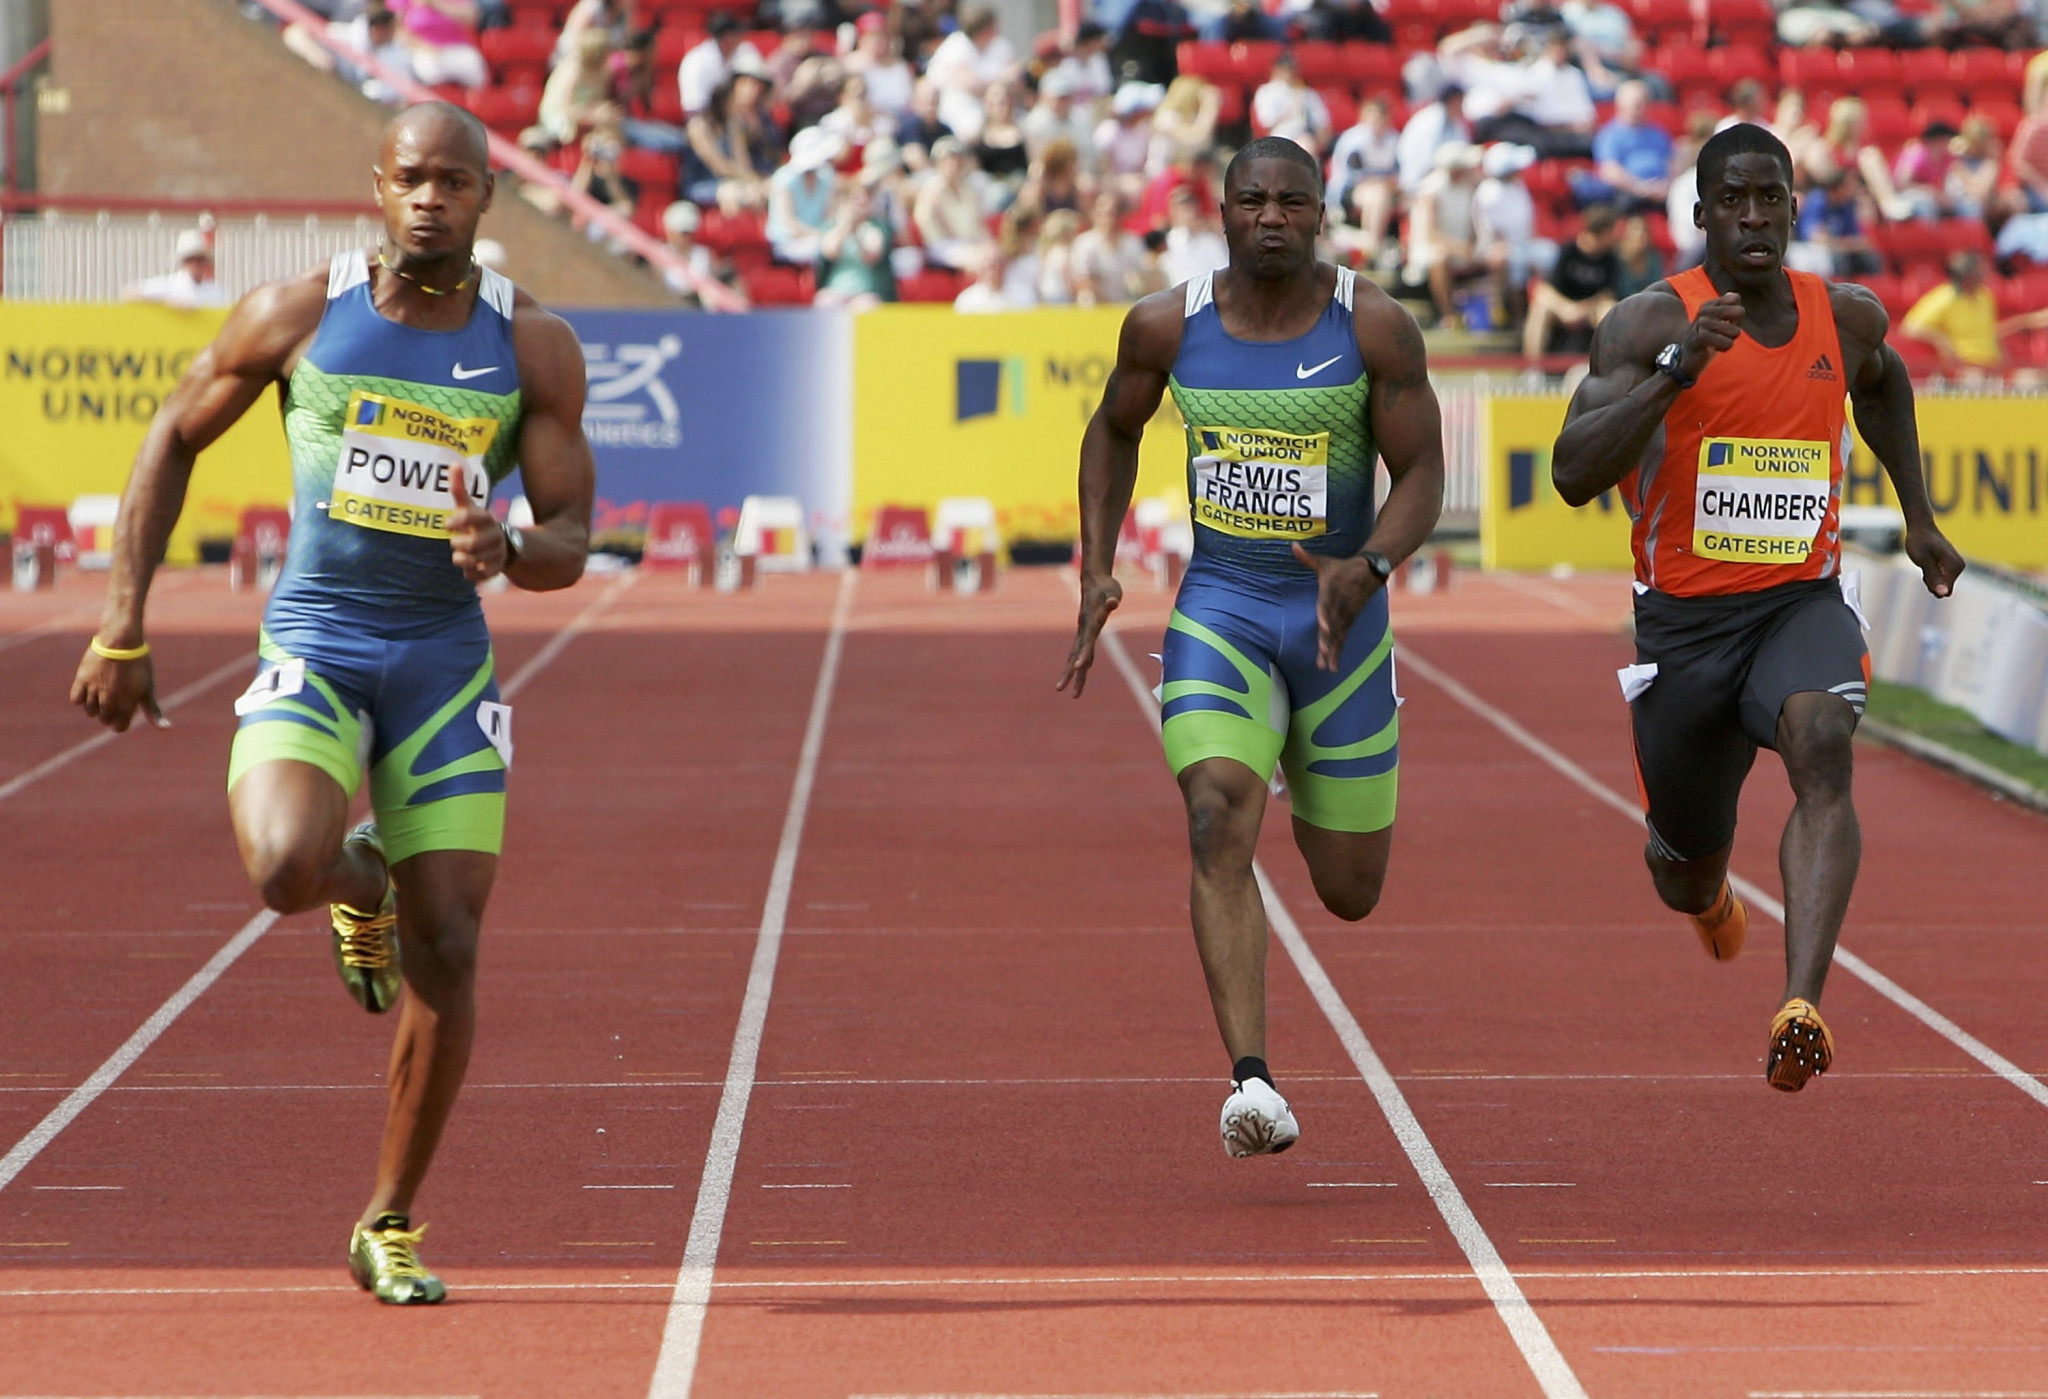 Jamaica's Asafa Powell equalled the world record for the 100 metres at the 2006 IAAF Diamond meeting in Gateshead and the venue in the North-East of England is set to return to the circuit in 2020 ©Getty Images